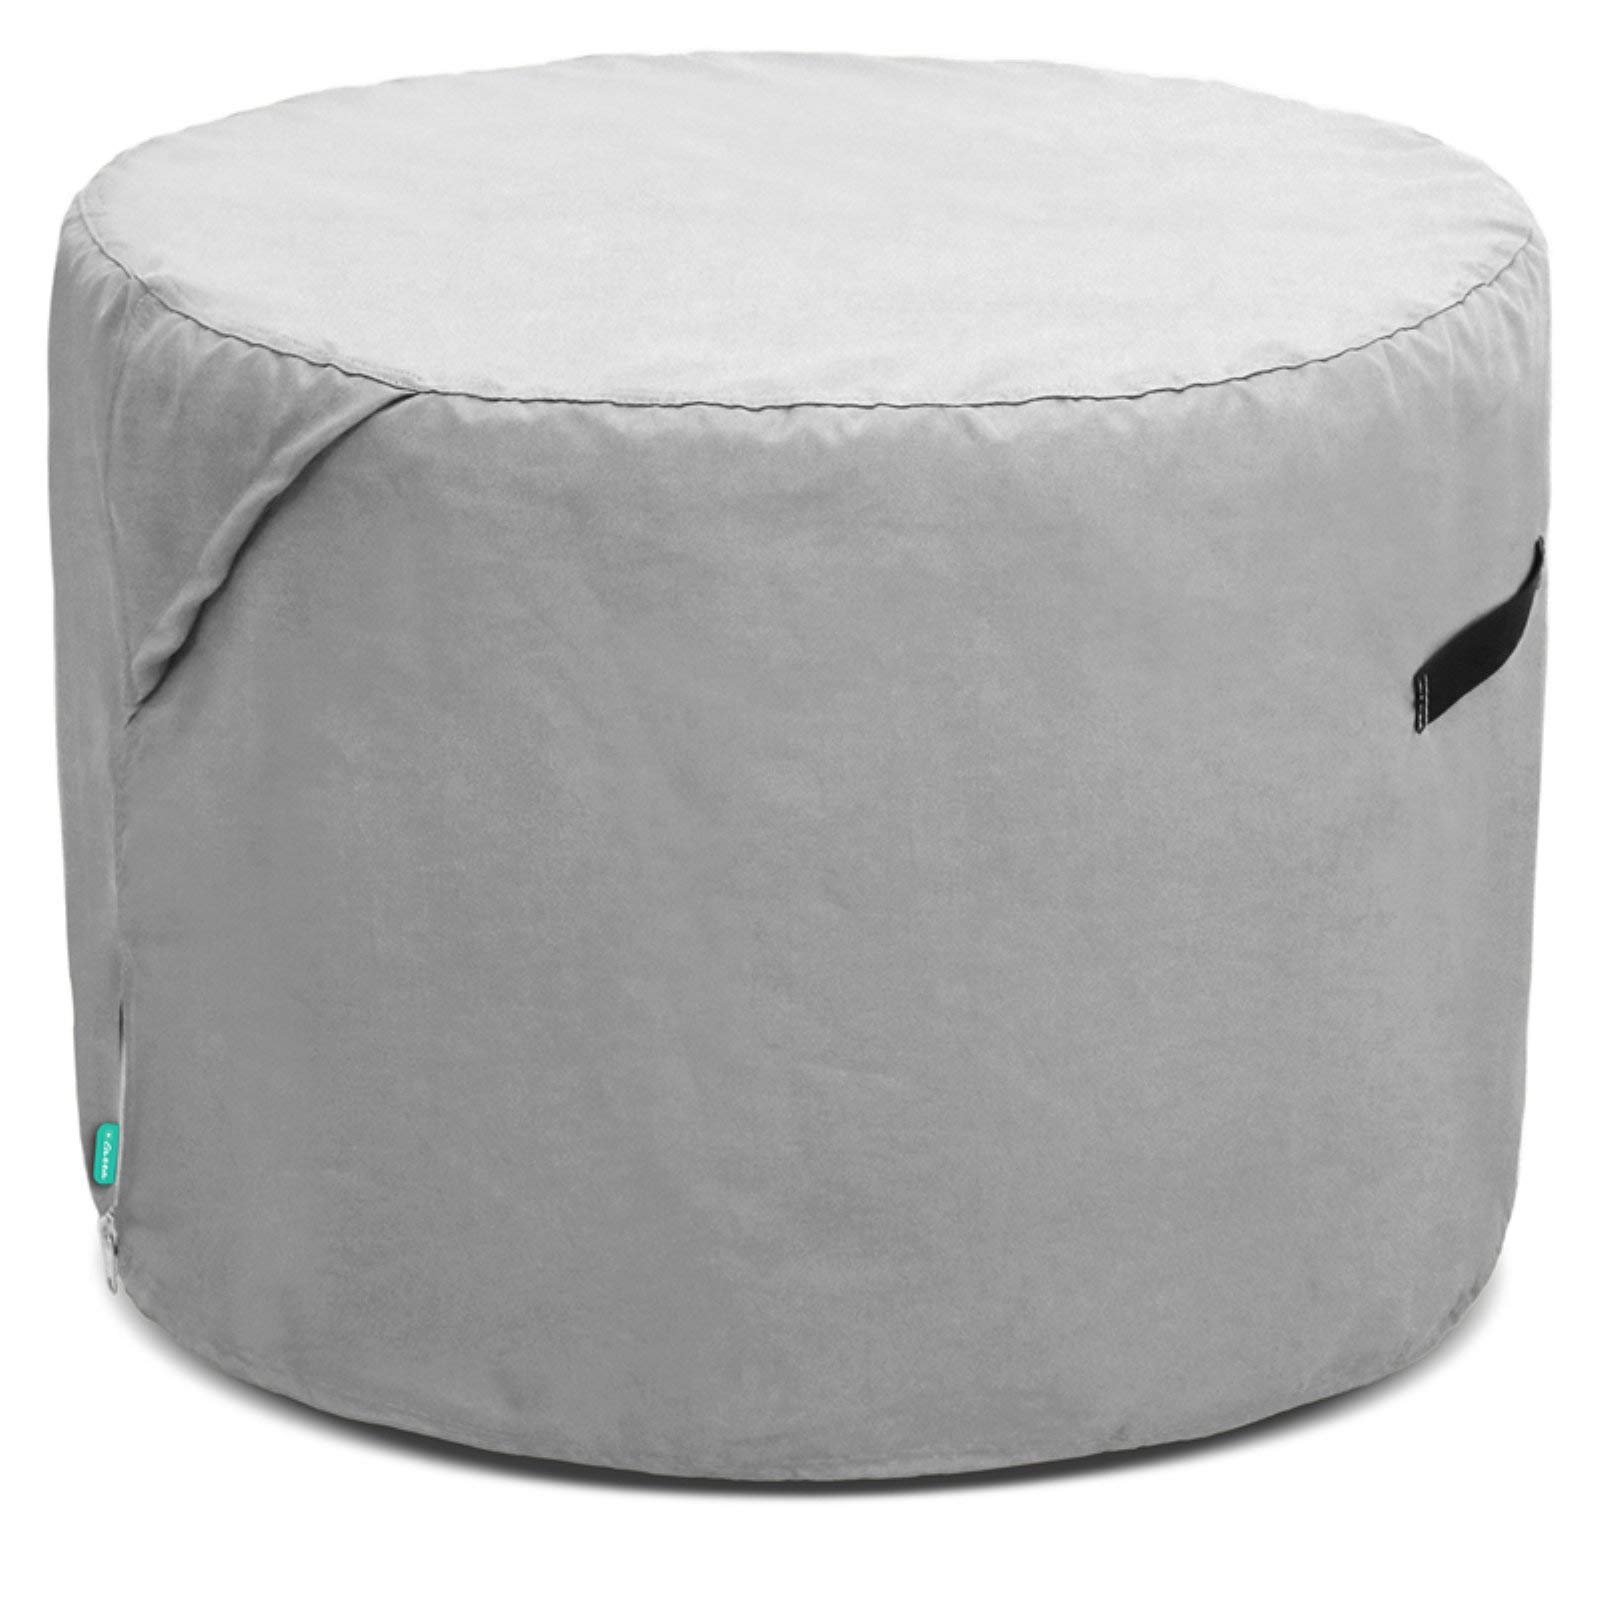 OKSLO Universal outdoor ufcoz2818pt patio round ottoman cover